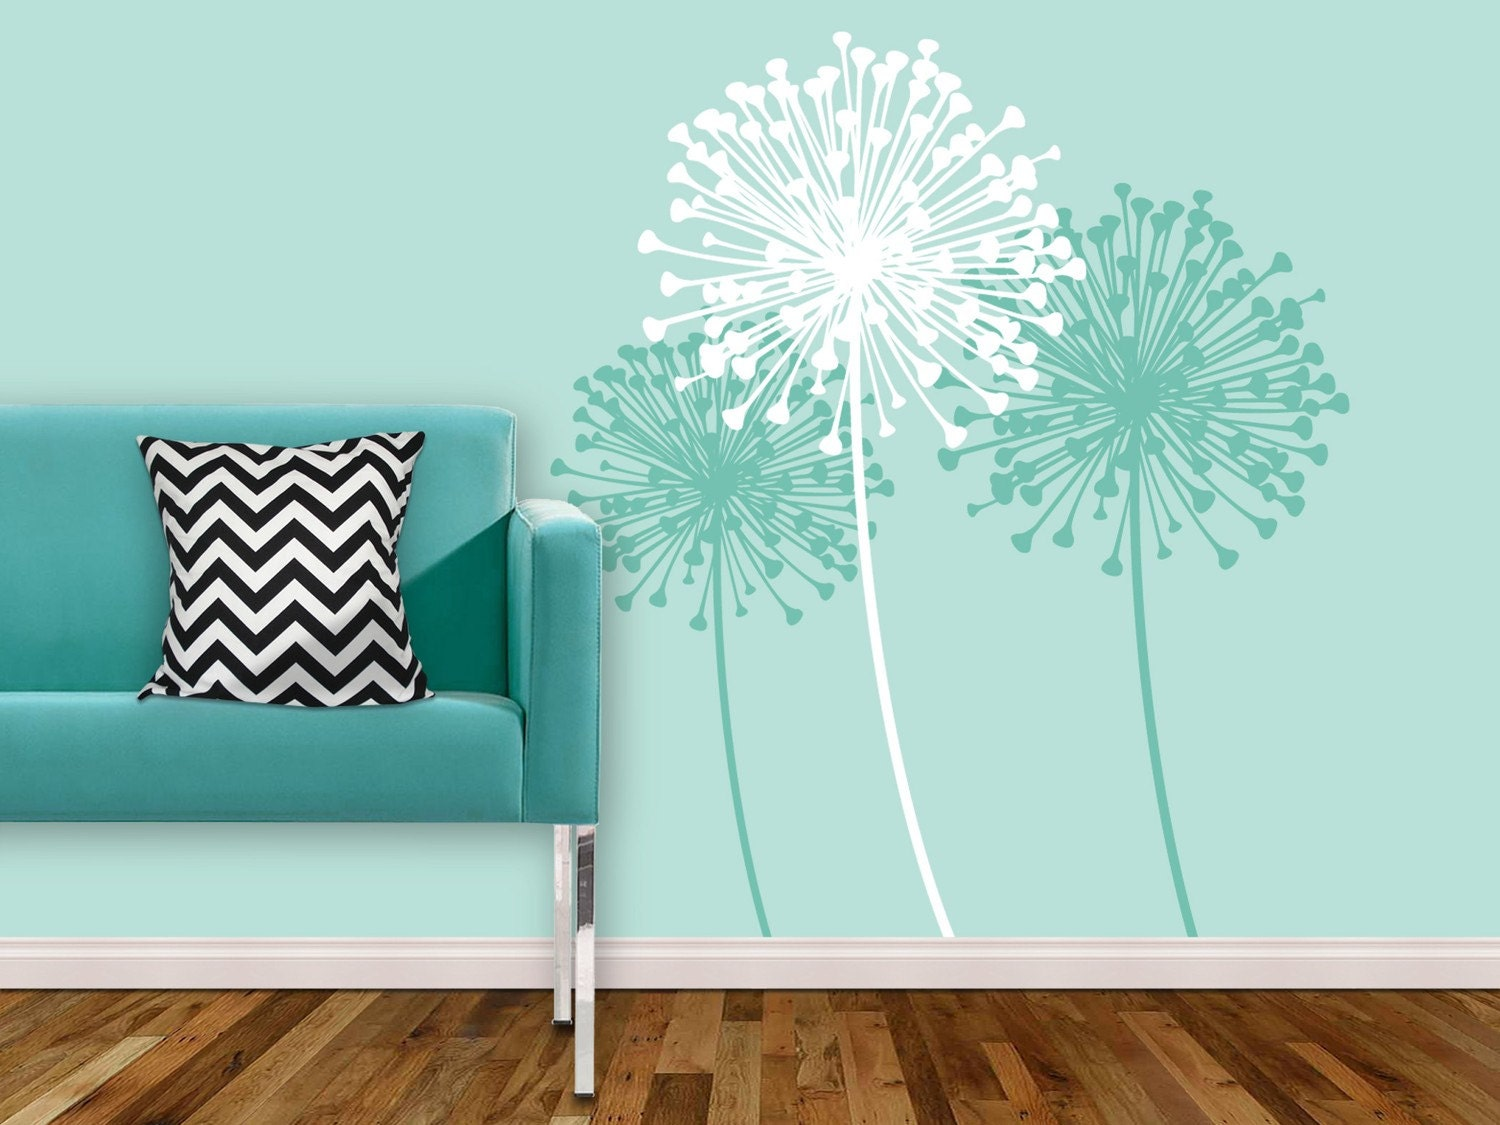 Dandelion by KathWren Vinyl Wall Decal